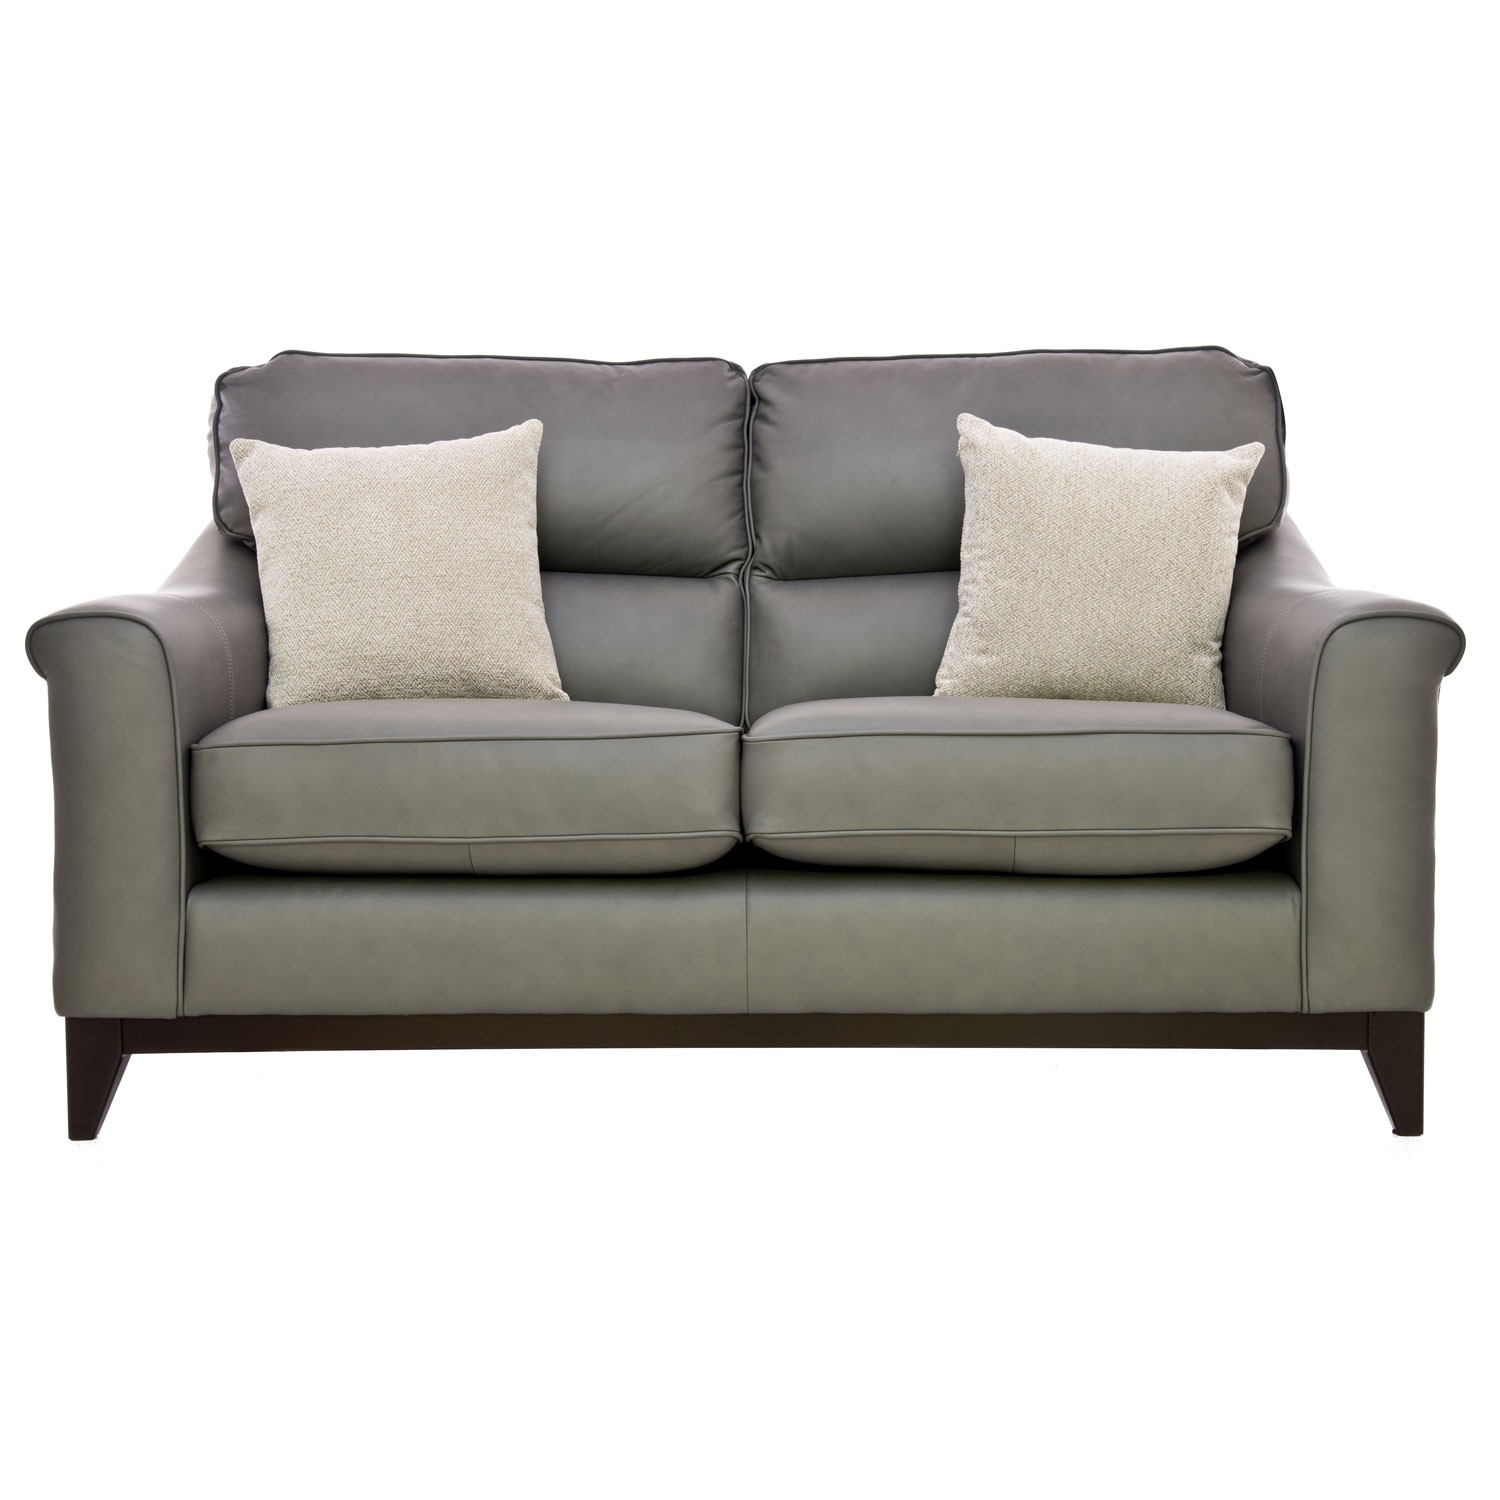 Parker Knoll Montana 2 Seater Leather Sofa | Leekes For Montana Sofas (View 1 of 15)